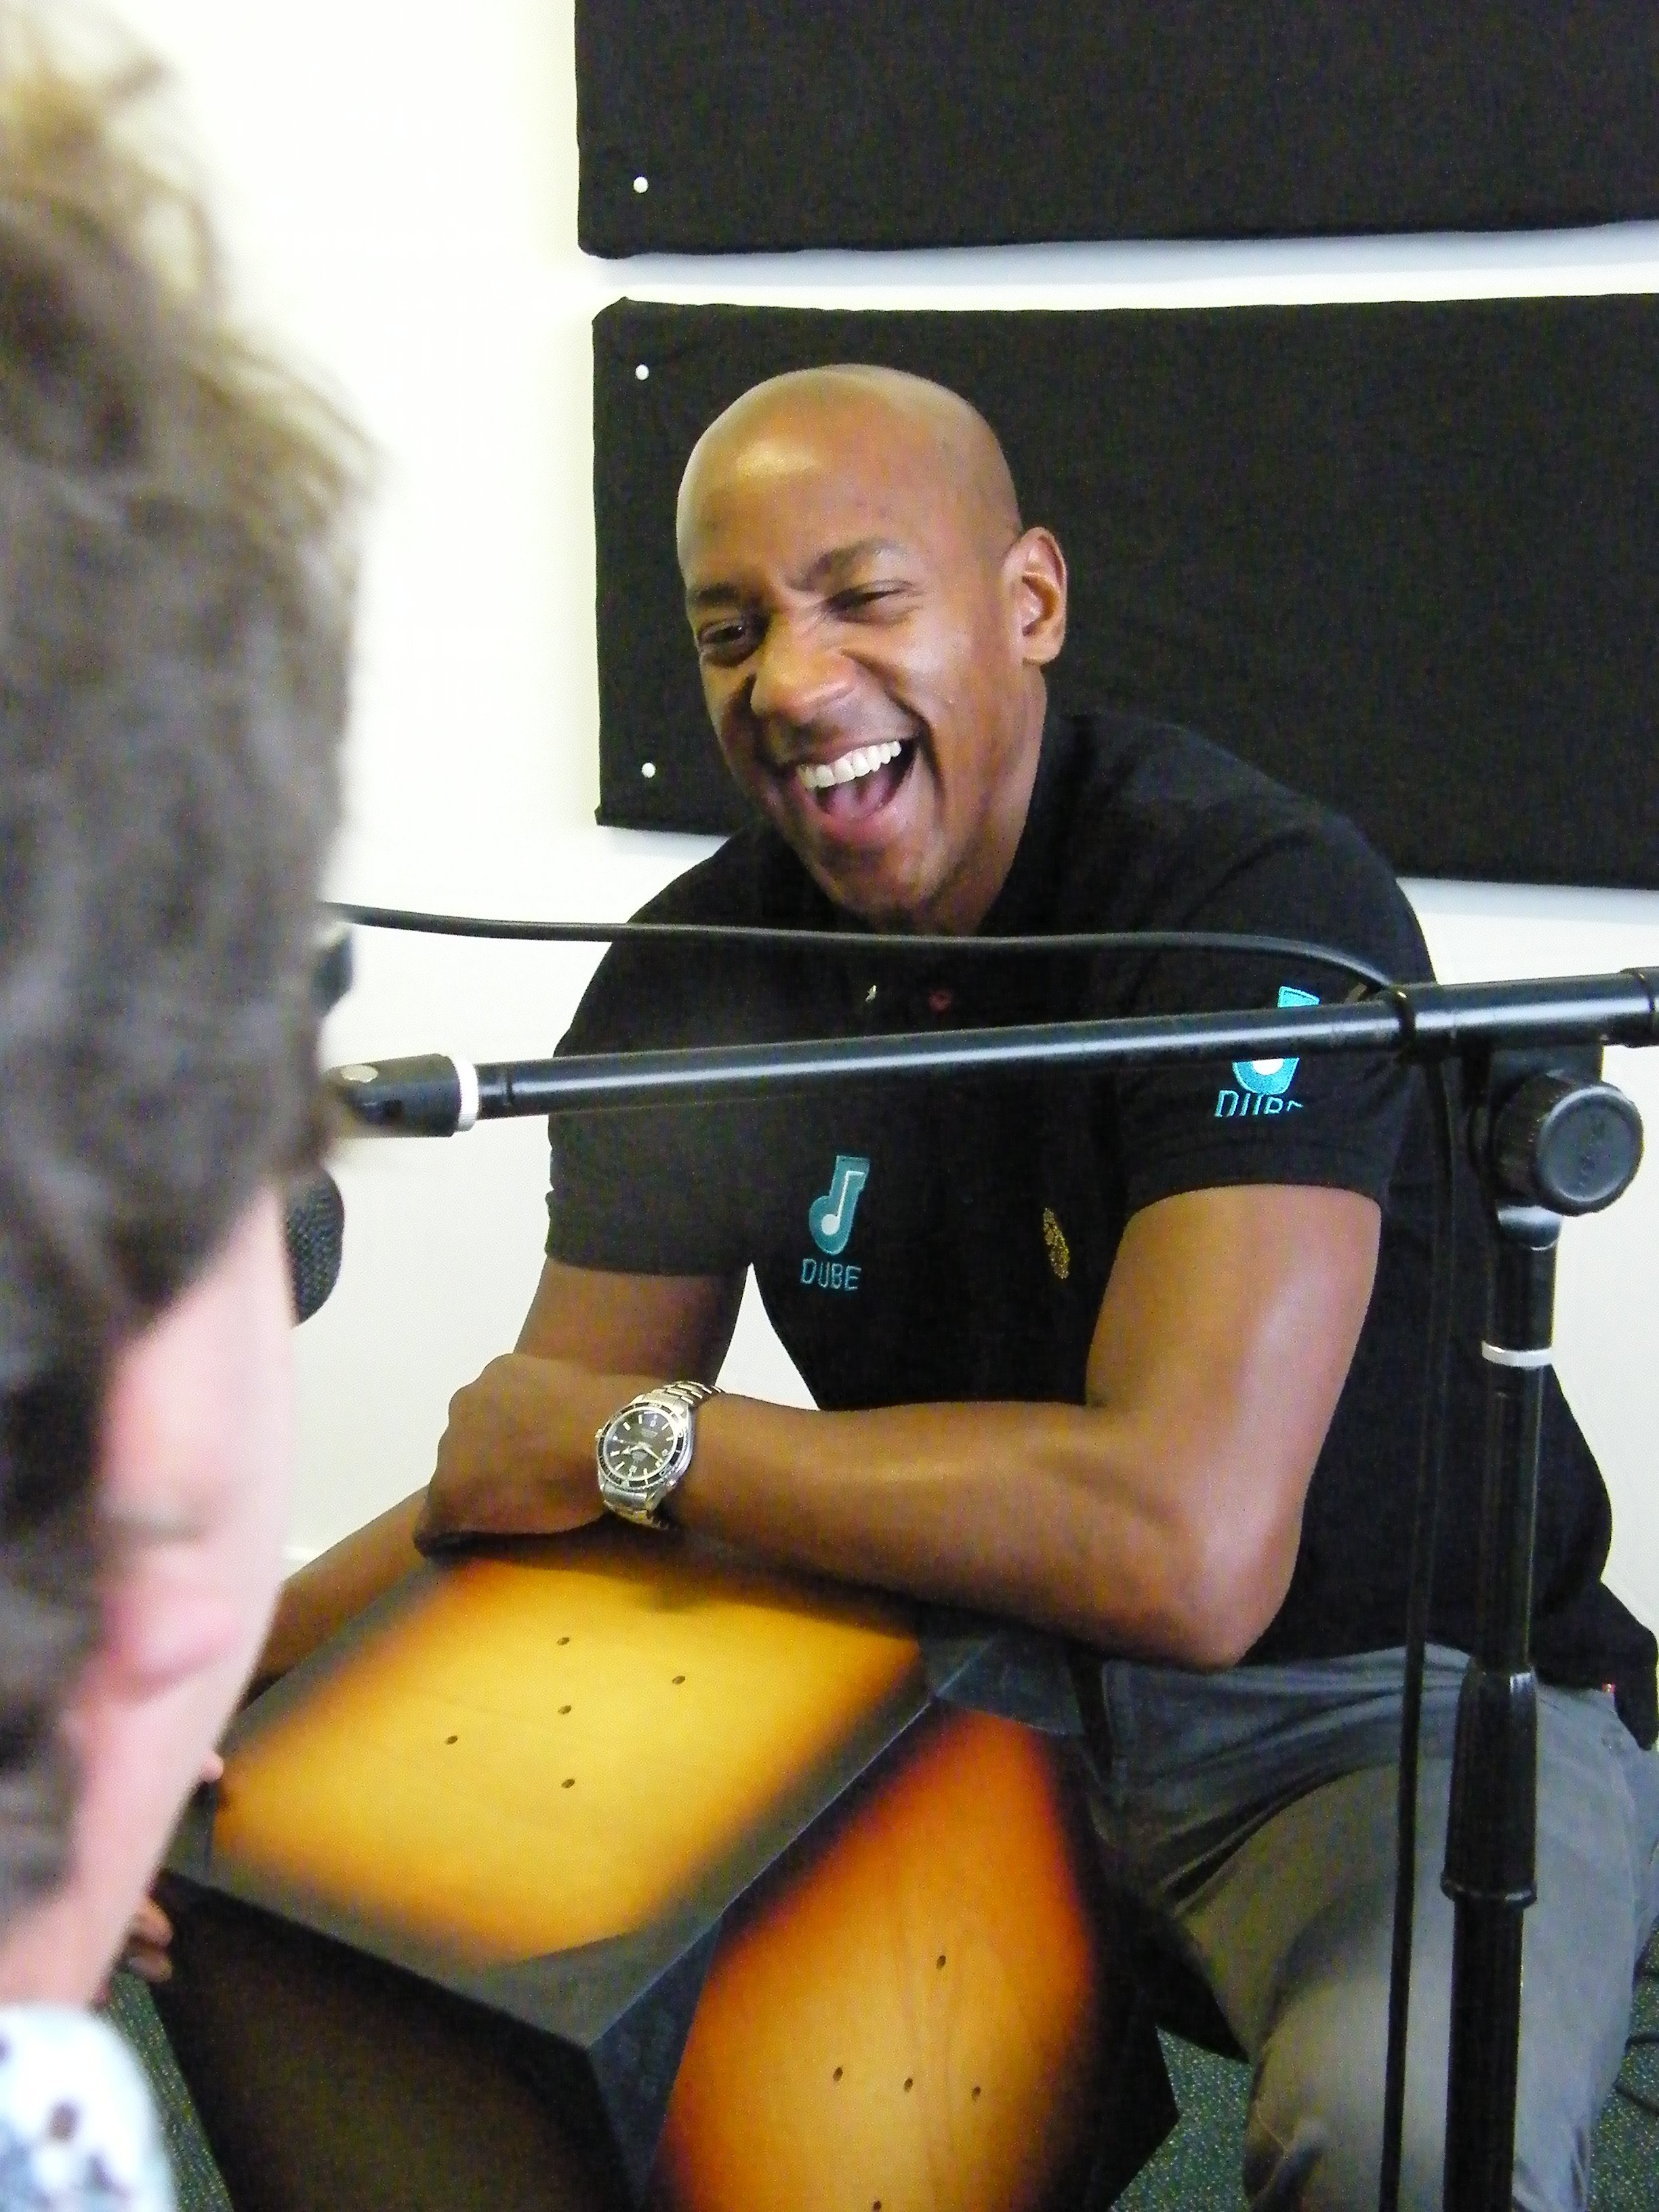 International Footballer, TV Presenter and Percussion Instrument Inventor! It's Dion Dublin on the Global Drum Network podcast Episode 3!!